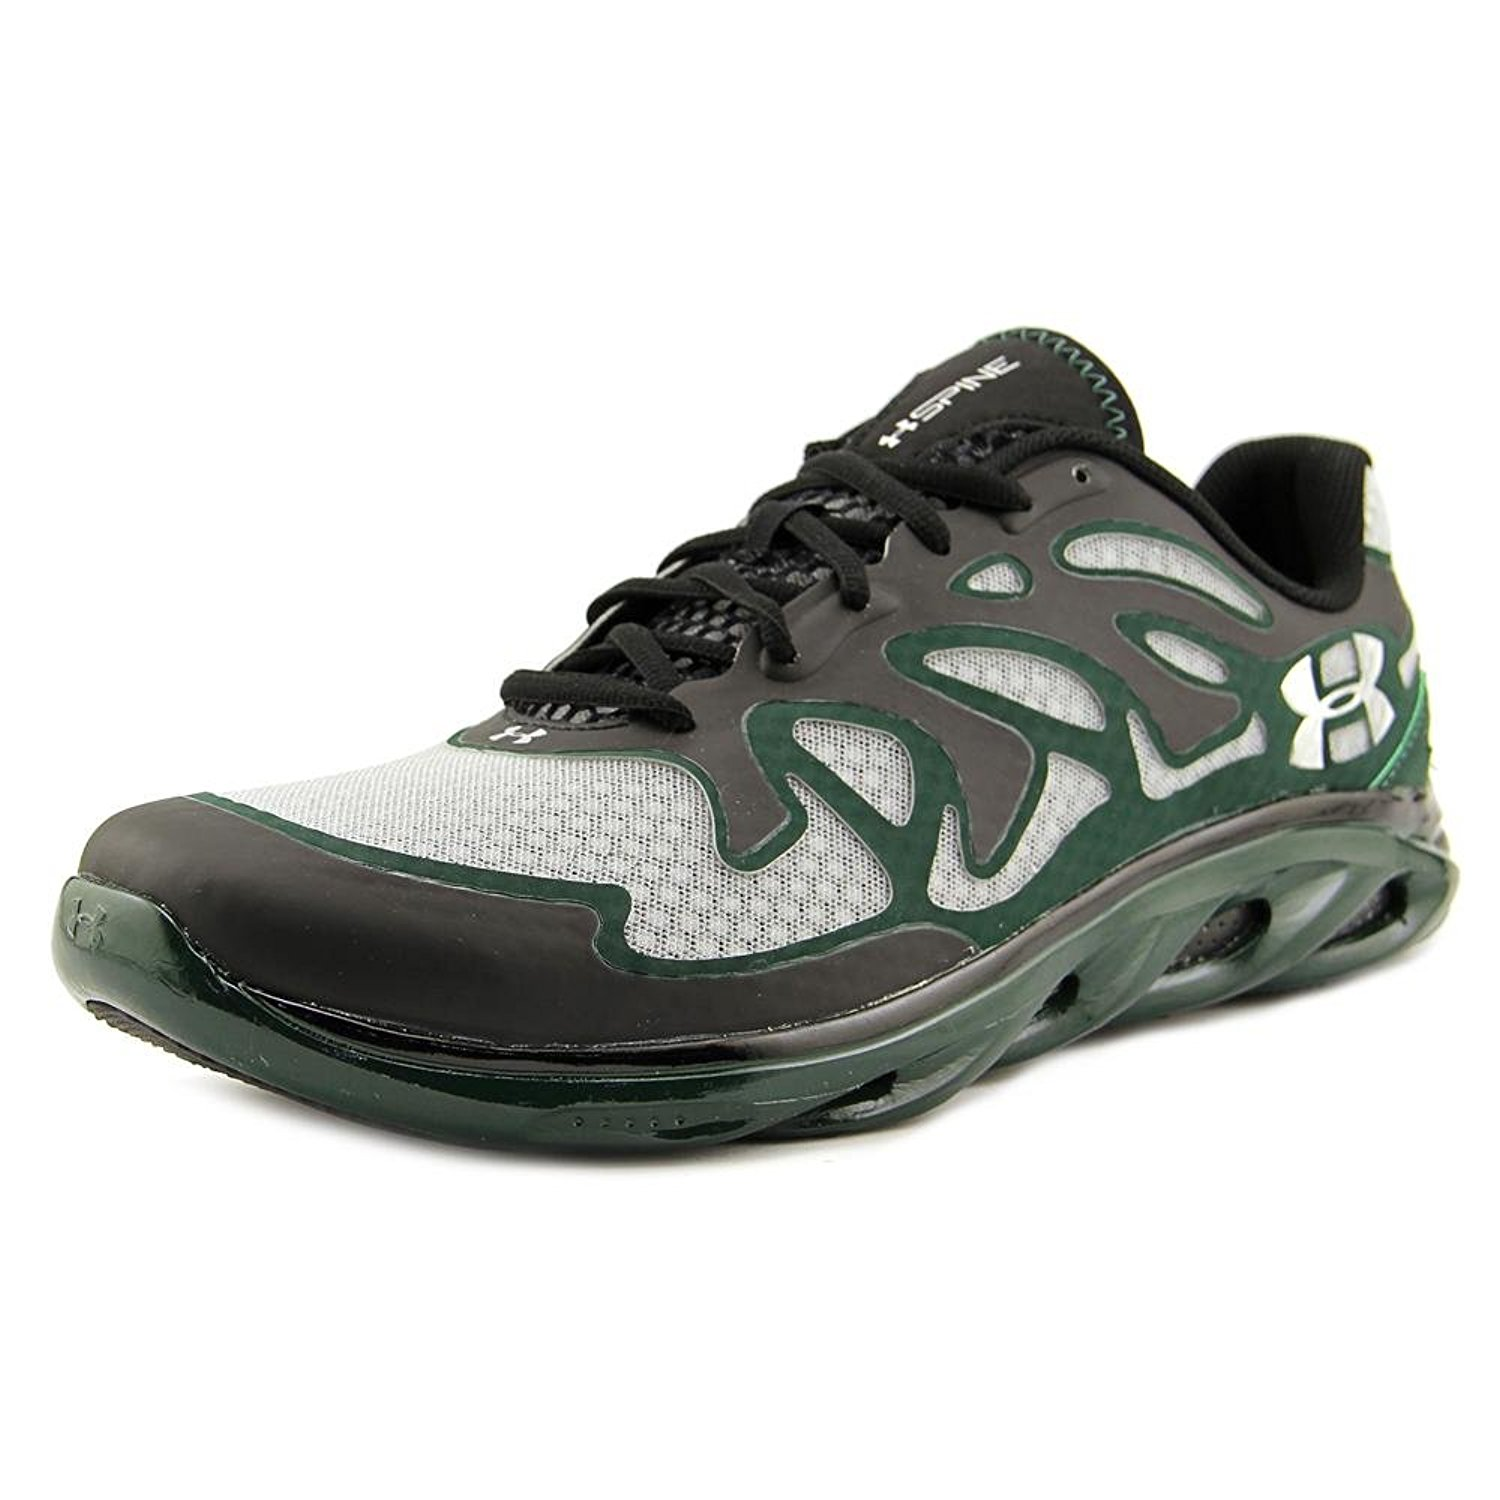 Mens Under Armour Team Spine Evo Training Shoe, 8.5 D US, Green/Black/Metallic Silver